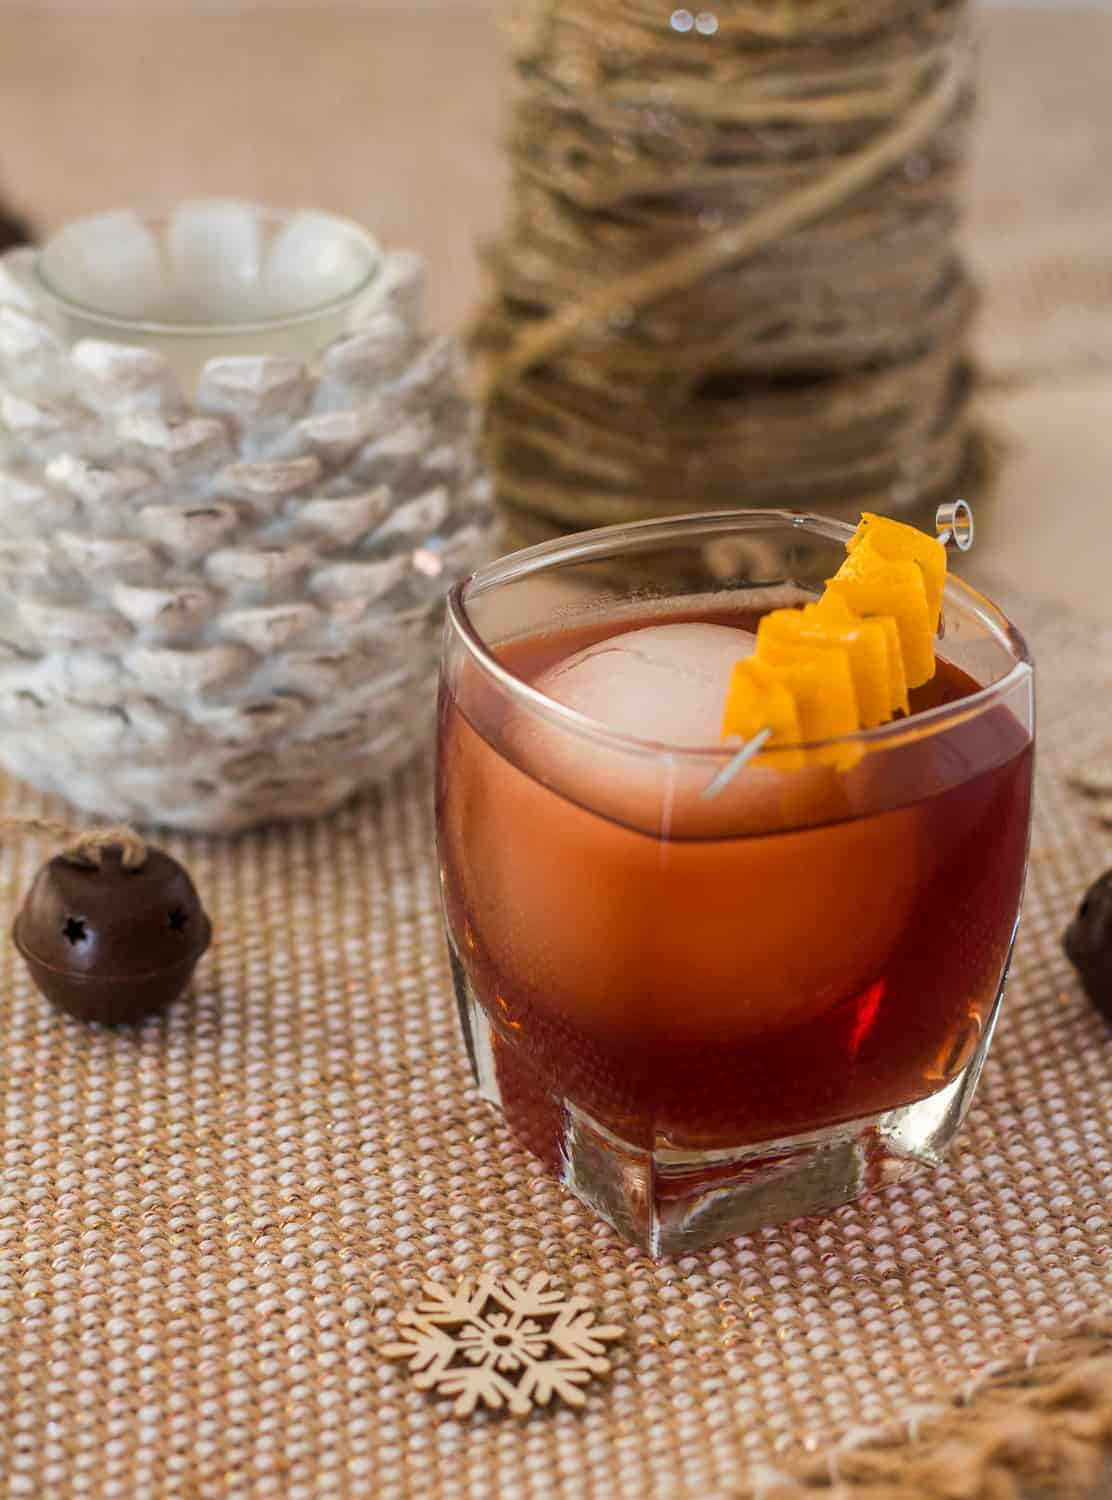 A single Winter Old Fashioned whiskey cocktail on a sparkly burlap tablerunner with christmas ornaments and candle.